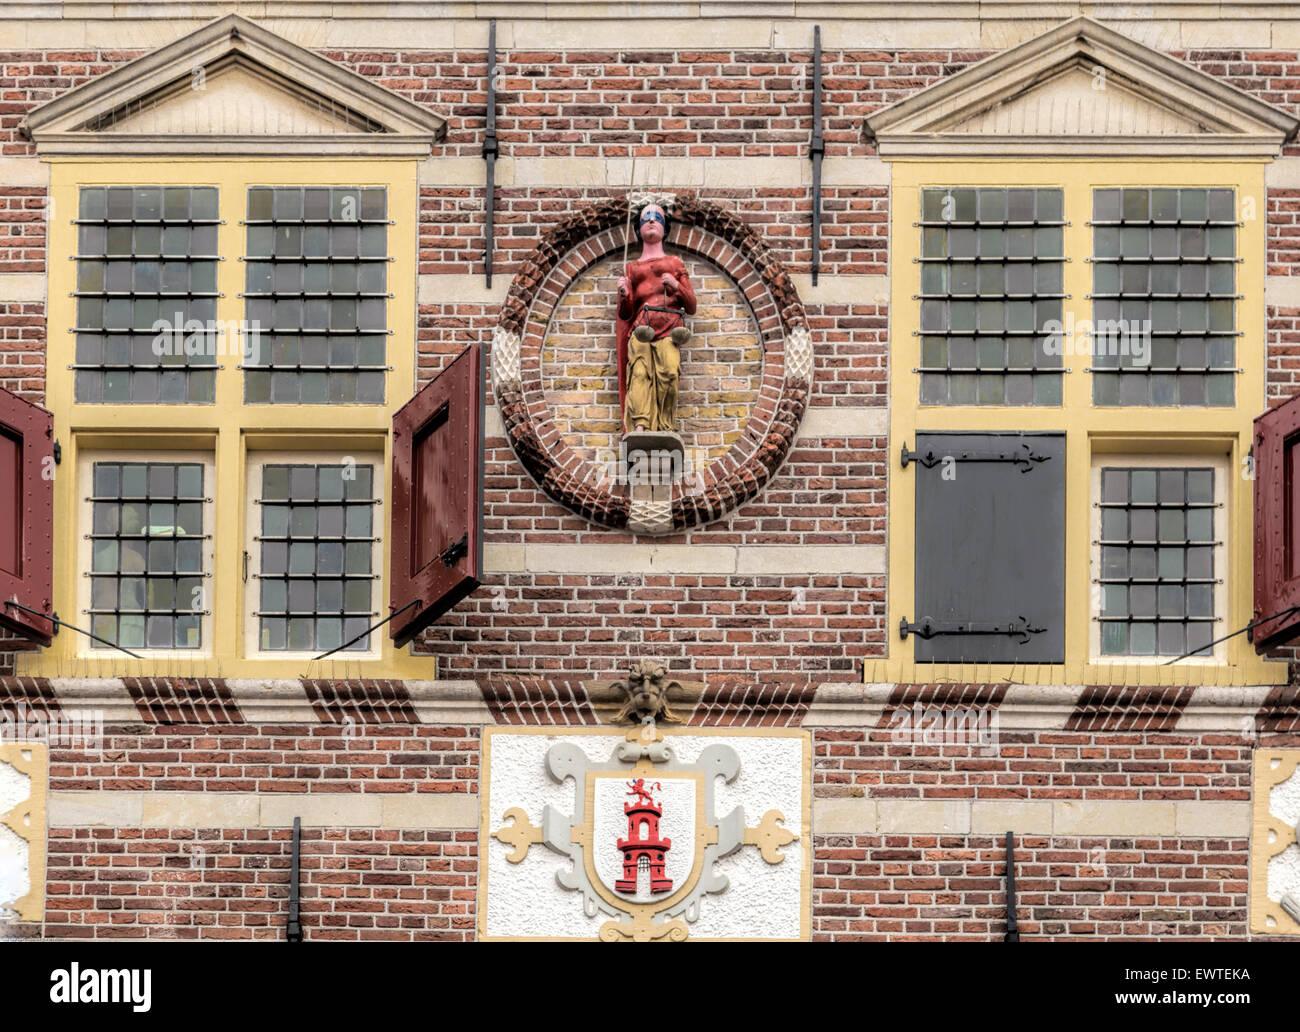 Detailed view of the facade of the City Hall (dating from 1588), in Dutch Renaissance style, Oudewater, Utrecht, - Stock Image